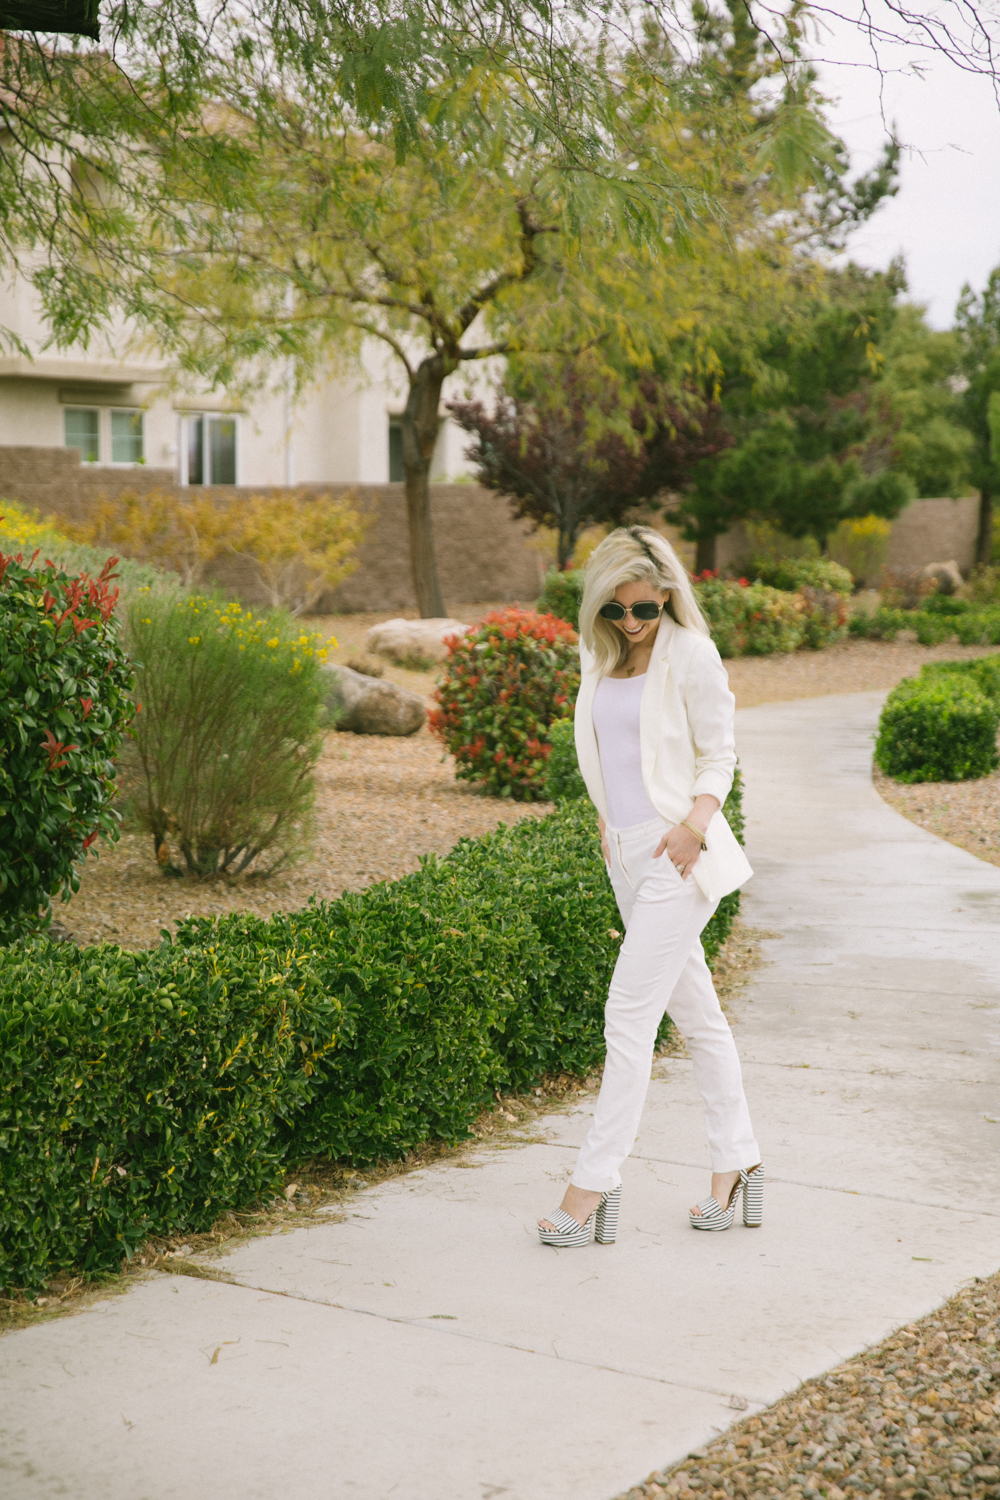 Spring Fashion Favorites by popular Las Vegas fashion bloggers Life of a Sister